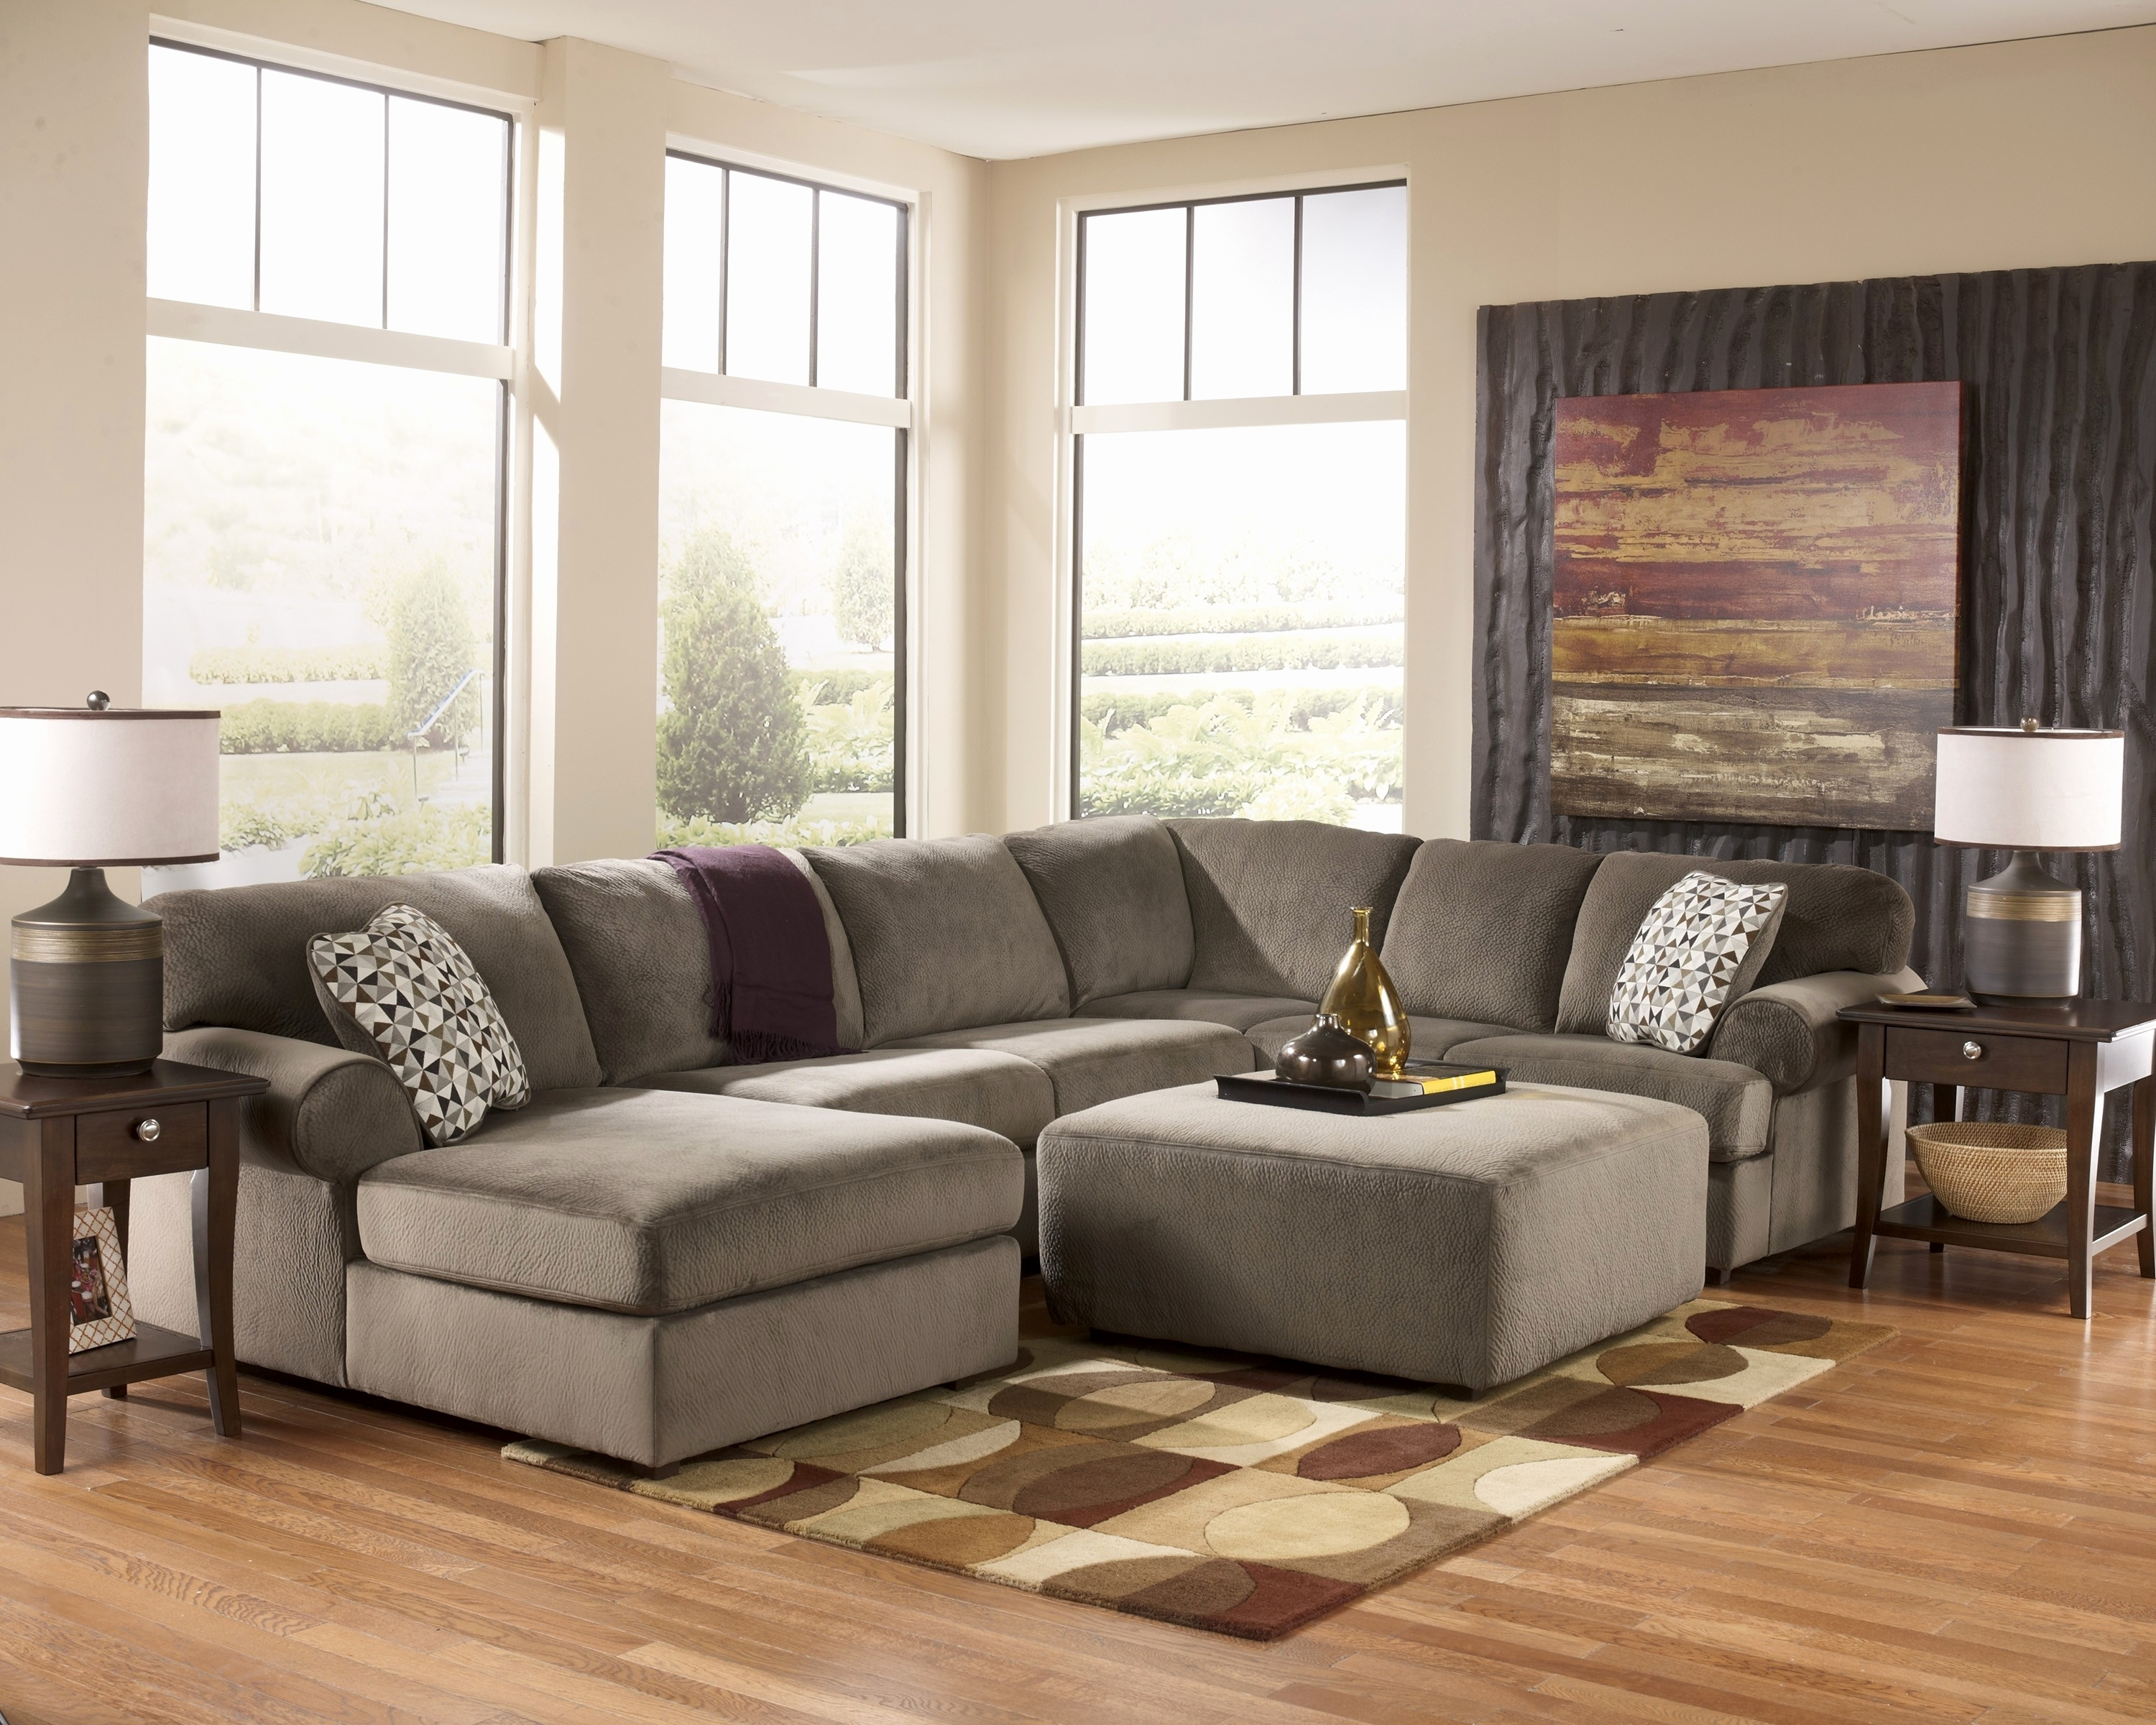 Furniture : Extra Large Sectional Sofa With Chaise And Ottoman U Pertaining To Well Known Sectional Sofas With Oversized Ottoman (View 4 of 20)